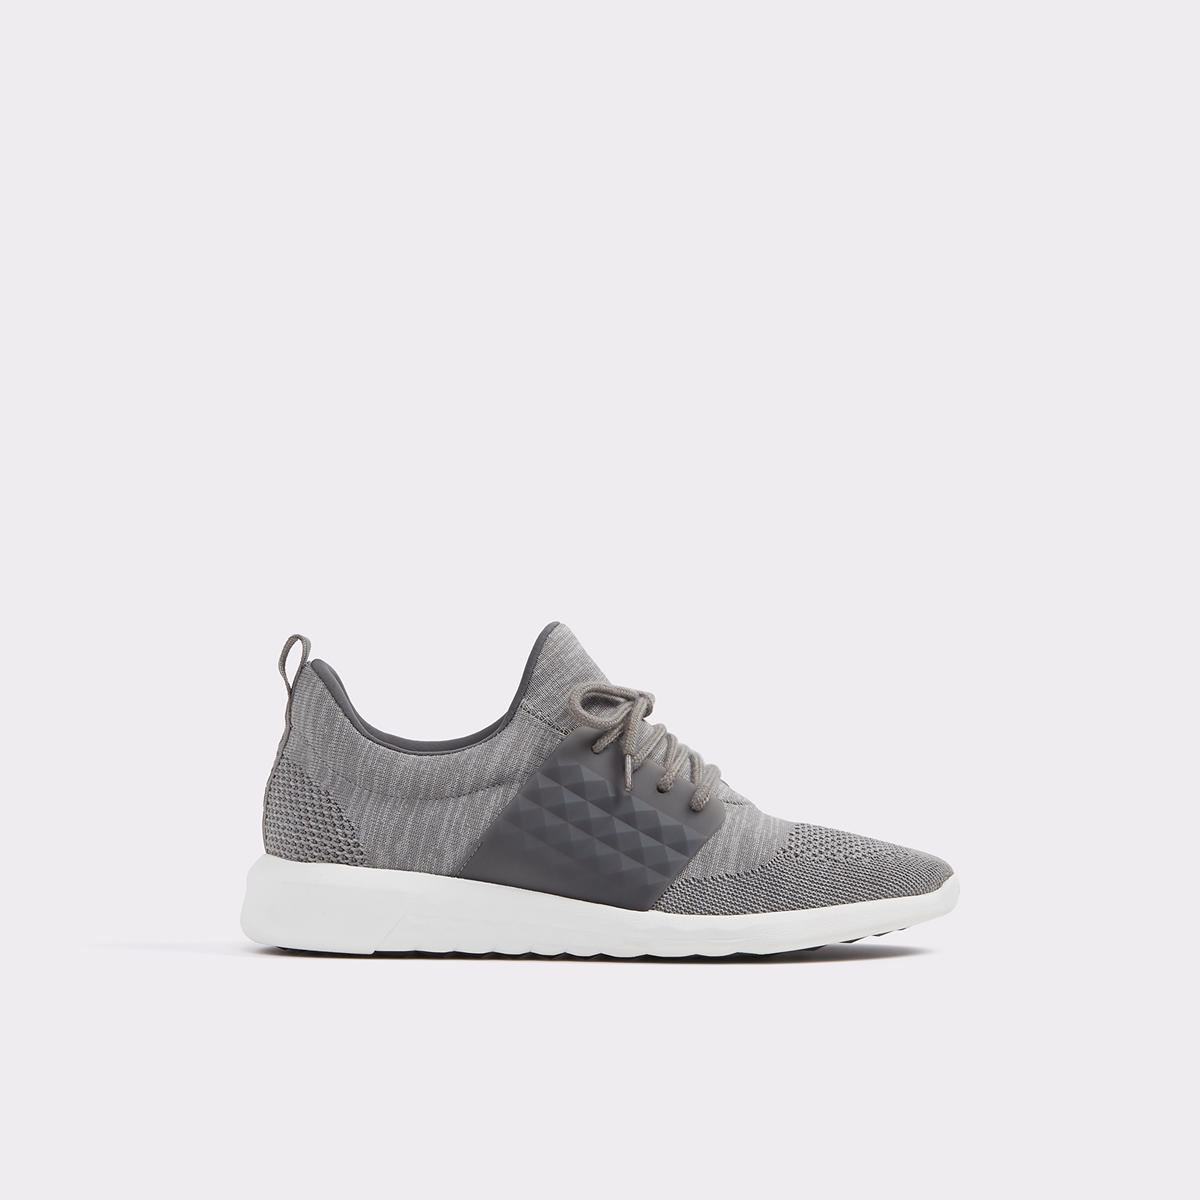 Perfect Cheap Online 100% Authentic Cheap Price Mens Mx.0 Slip on Trainers Aldo Cheap With Credit Card coUzQOM